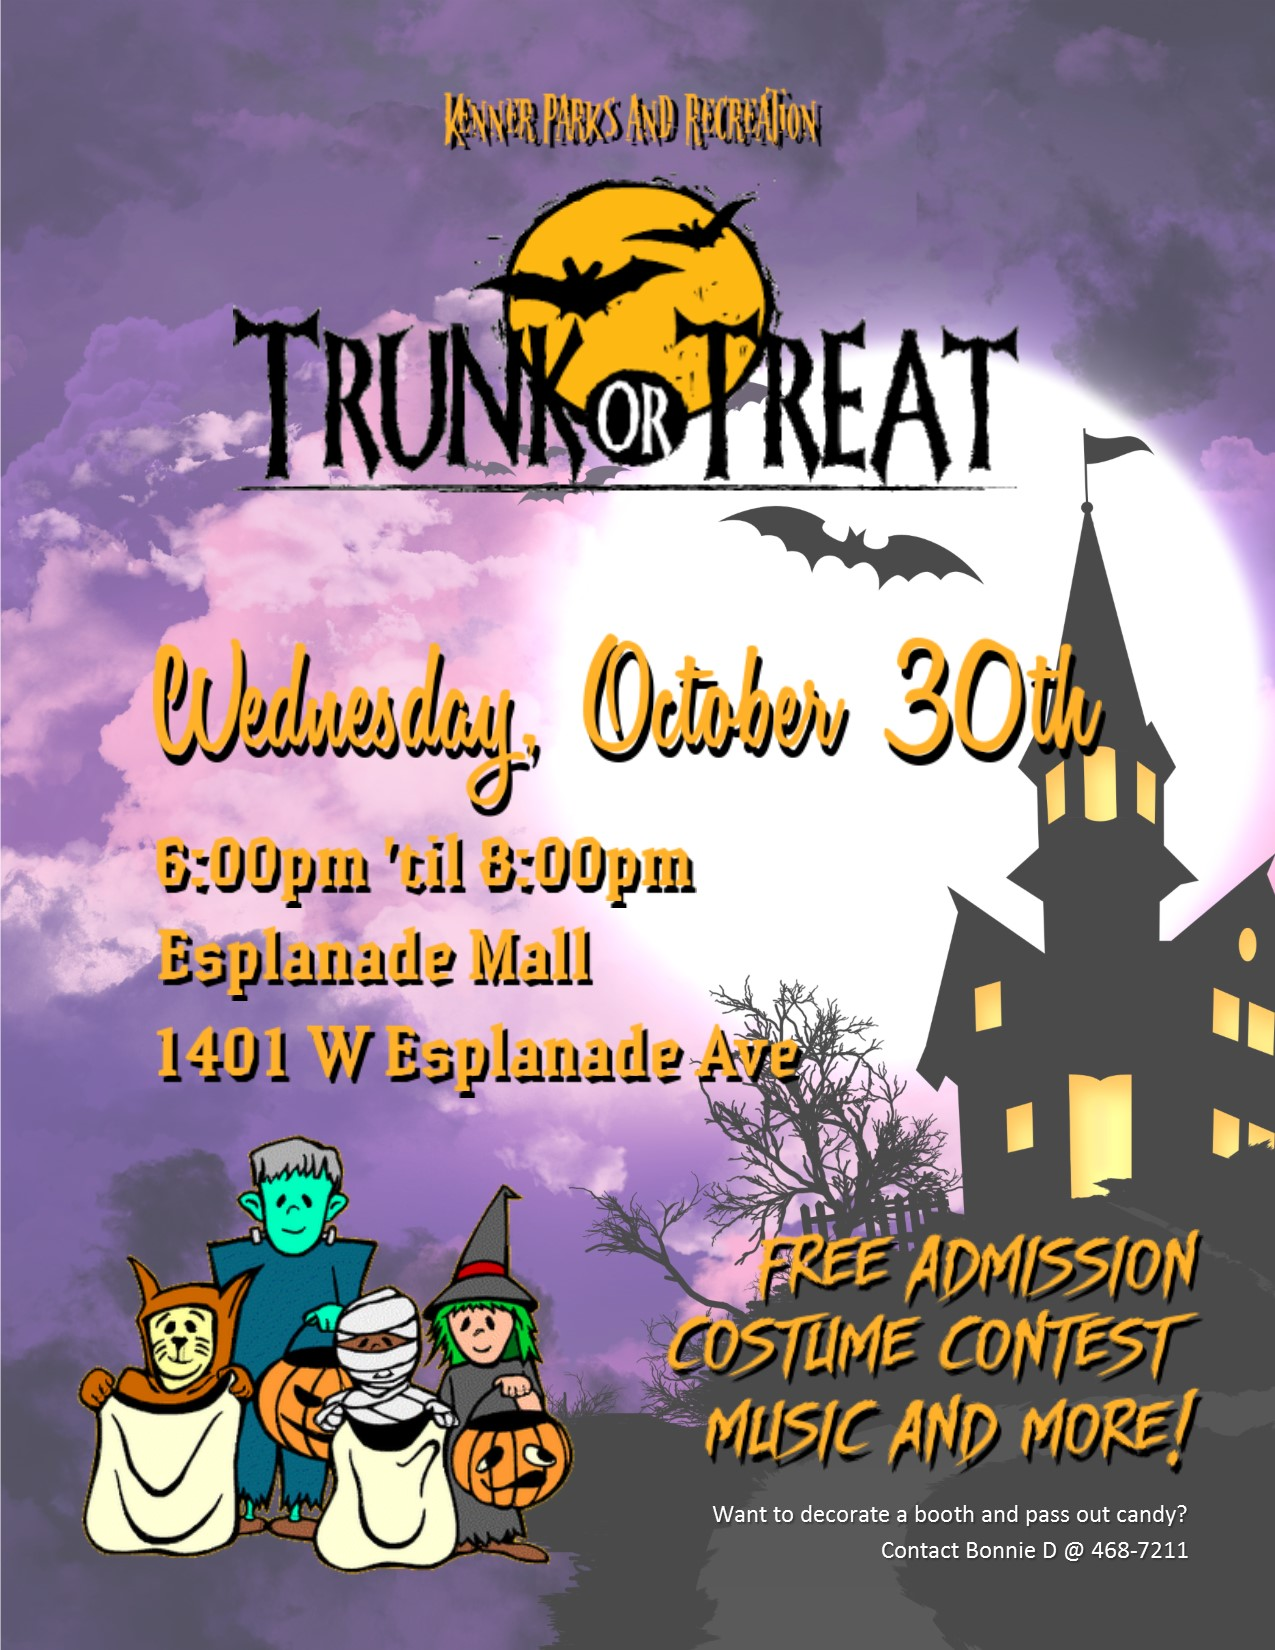 Image of Trunk or Treat poster with event details